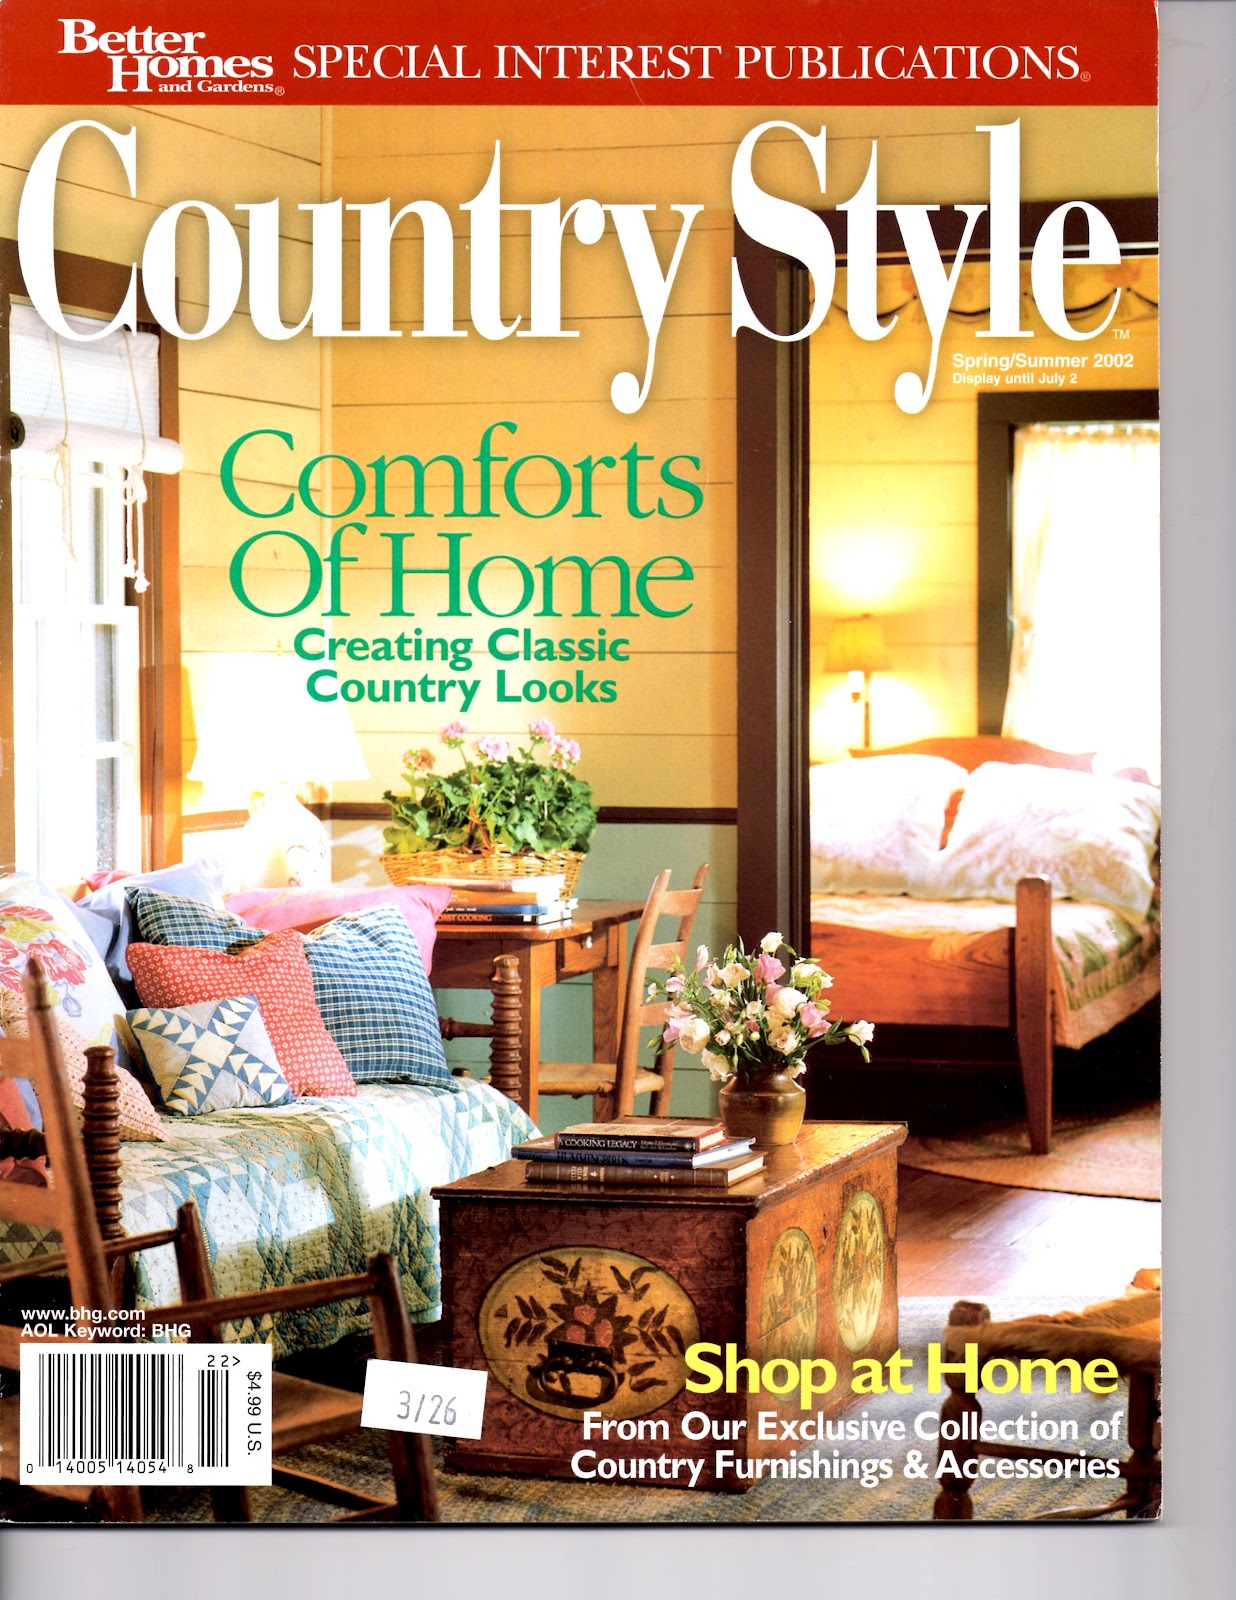 better homes and gardens would issue a decorating with antiques